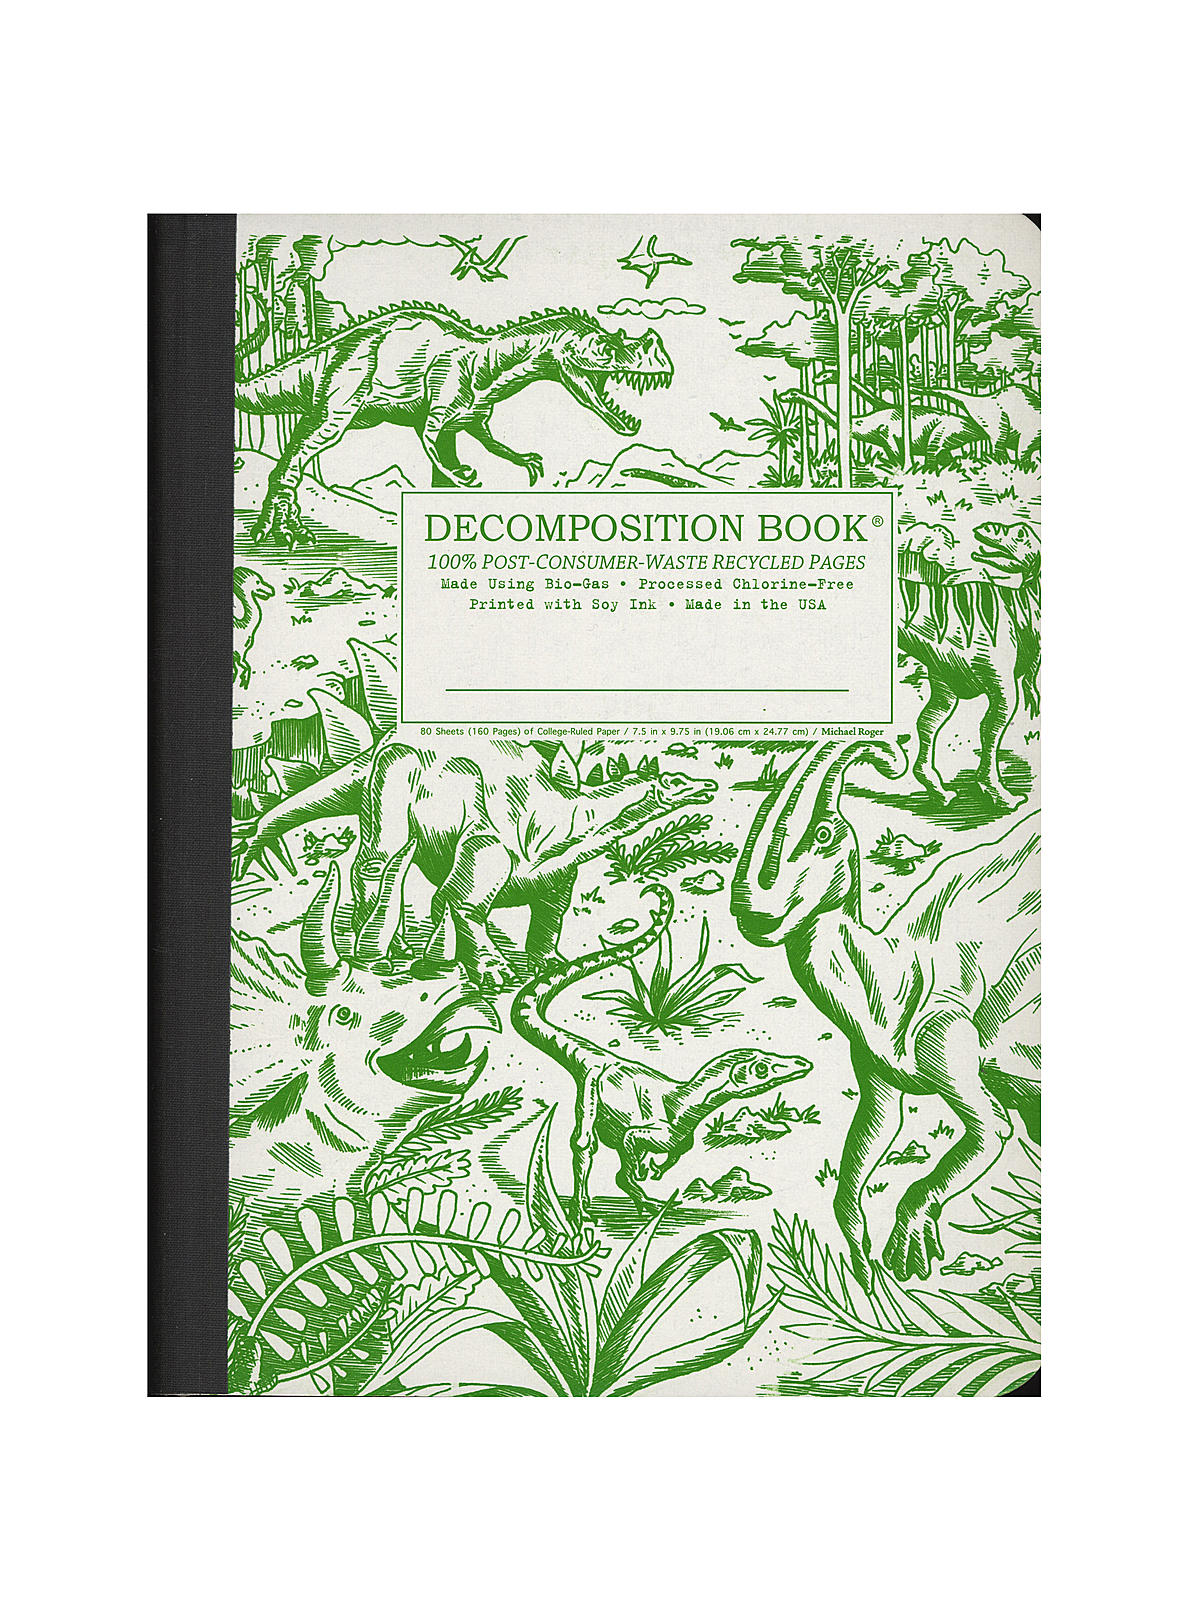 Decomposition Book dinosaurs - 1afa79b53ee8c5c , Decomposition-Book-dinosaurs-13708576 , Decomposition Book dinosaurs , Array , 13708576 , Gift Ideas , 04343